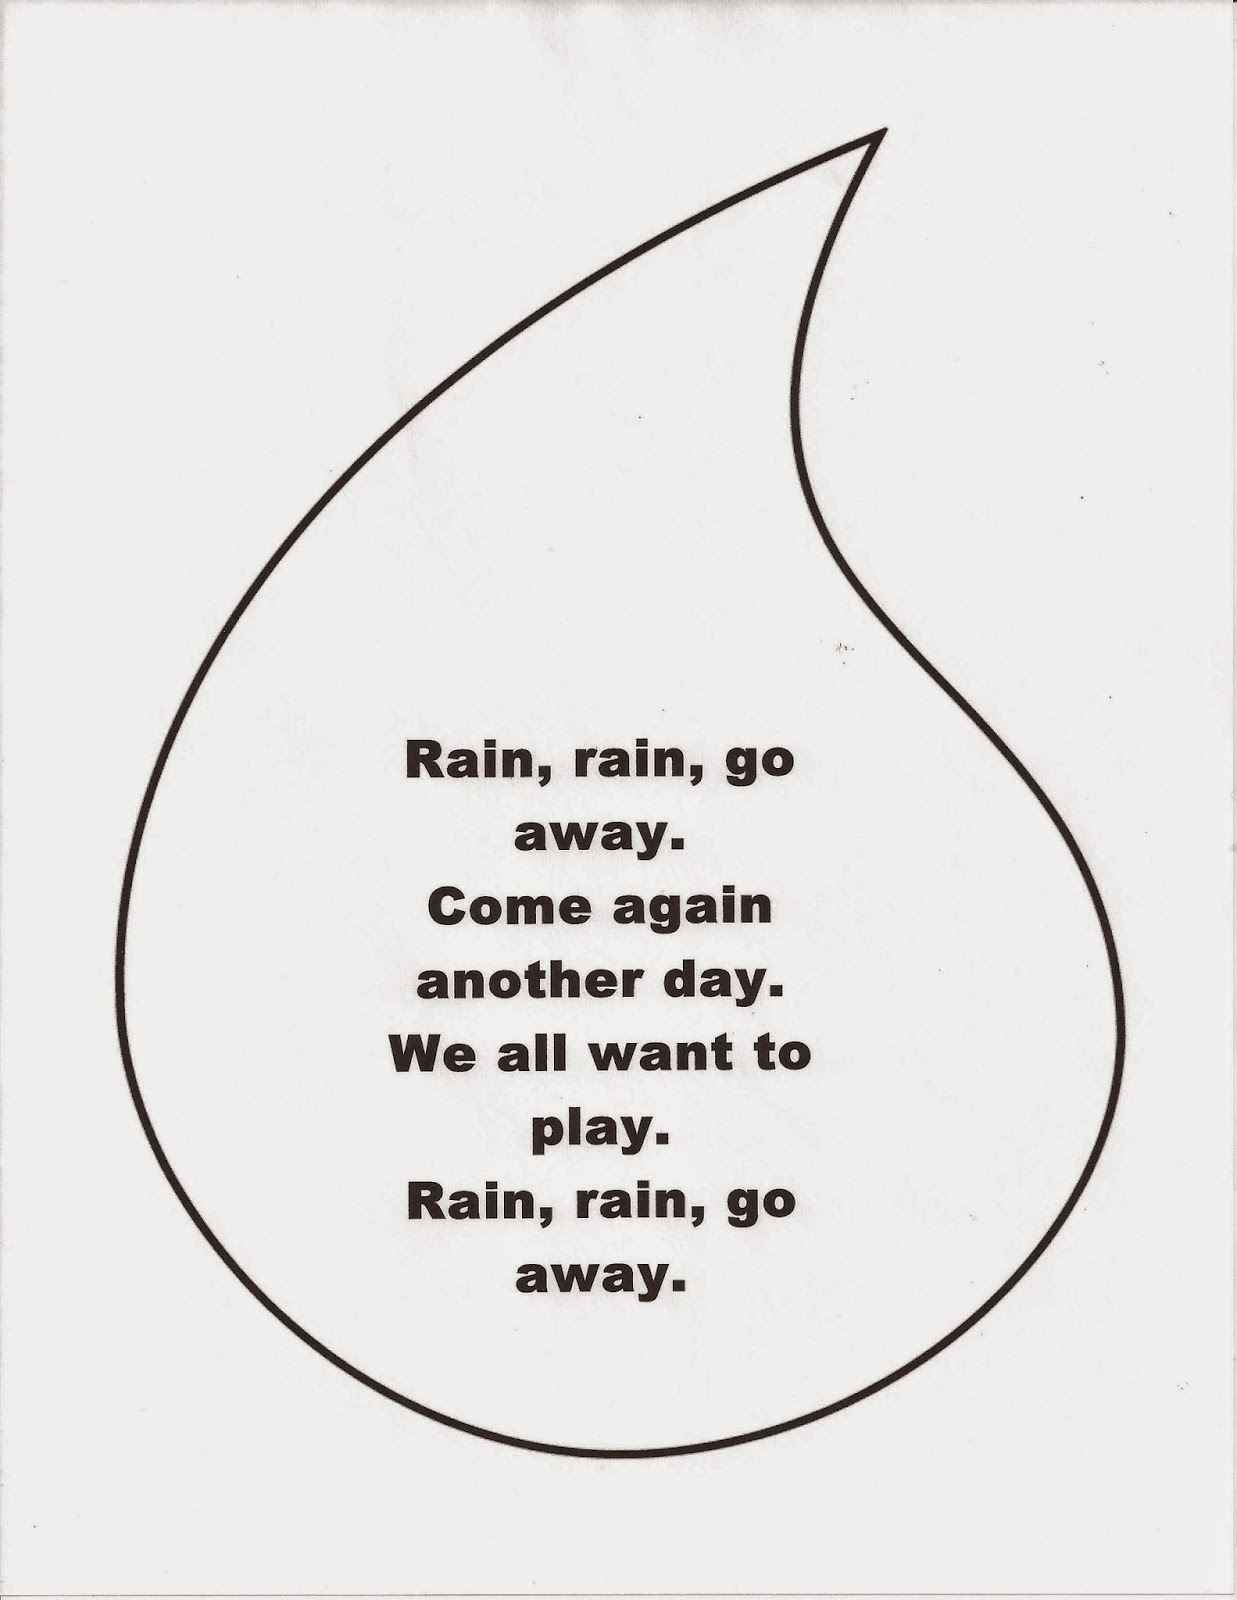 Para Rain Go Away Worksheet Free Worksheets The Came Down For likewise Word Problem   Rain  Rain  Go Away   Grade 1    Free Printable Tests moreover Rain  Rain  Go Away   Super Simple Songs   YouTube besides  furthermore Rain Rain Go Away Subtraction   For my kinder cl   Pinterest in addition Song   Rain rain go away   ESL worksheet by procei furthermore  additionally good way to do number order Rain  Rain Go Away  We're Counting to 20 likewise Make a Rain Gauge   Worksheets   Printables   Scholastic   Parents further Crafts for Kids' Minds  Pre Nursery Rhyme Craft besides SMART Exchange   USA   Rain Rain Go Away with Sole in addition Clroom Clics  Rain Rain Go Away  Lyric Sheet   ELF Learning also Rain Rain Go Away   ESL worksheet by manonski  f additionally Rain Worksheets Rain Rain Go Away Rainforest Worksheets For as well Rain  rain  go away    ESL worksheet by alien boy also Rain  Rain  Go Away  Close Reading Questions Worksheet. on rain go away worksheet